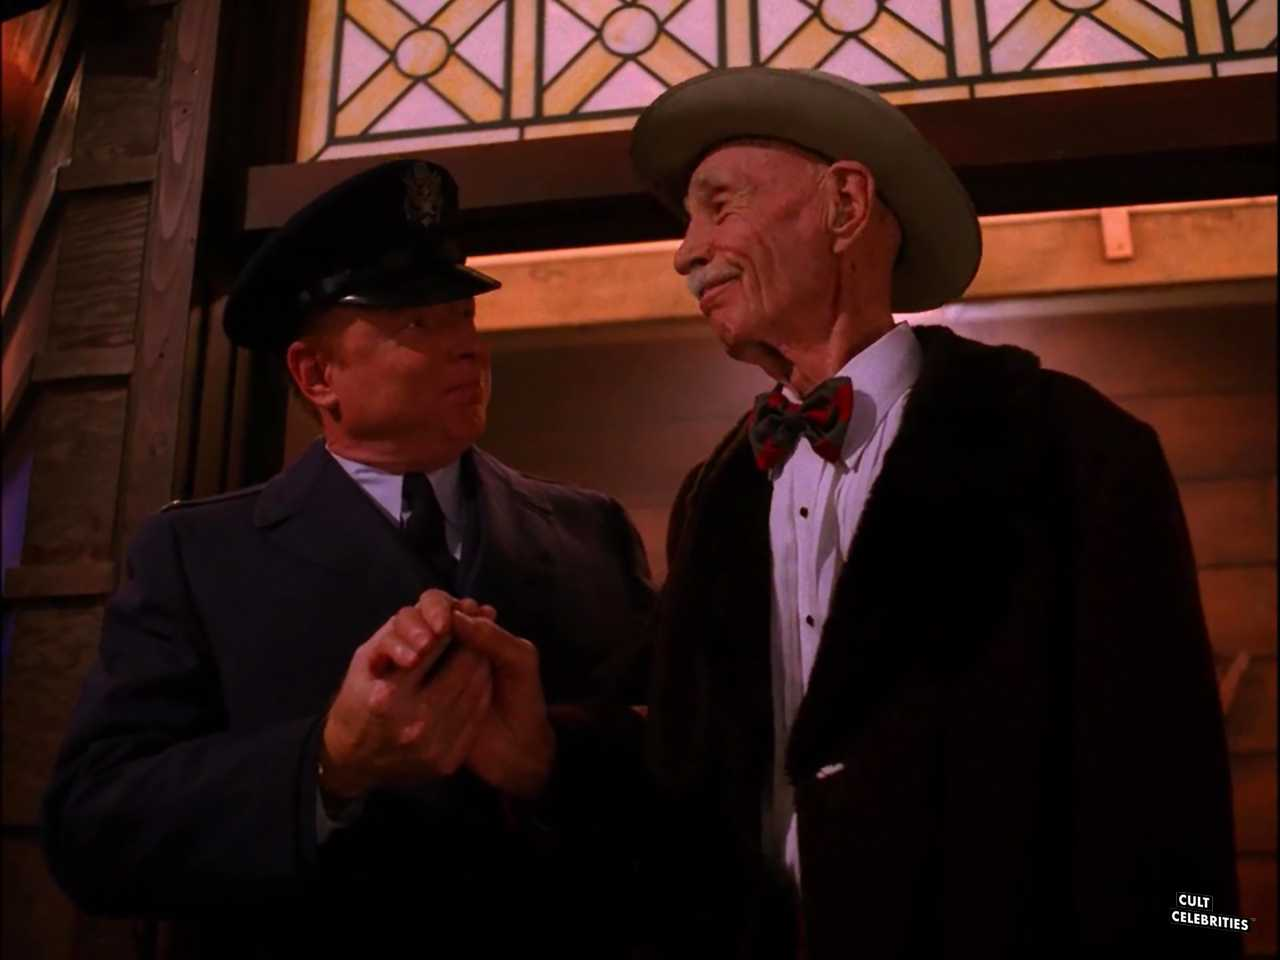 Don S. Davis and Hank Worden in Twin Peaks (1990)